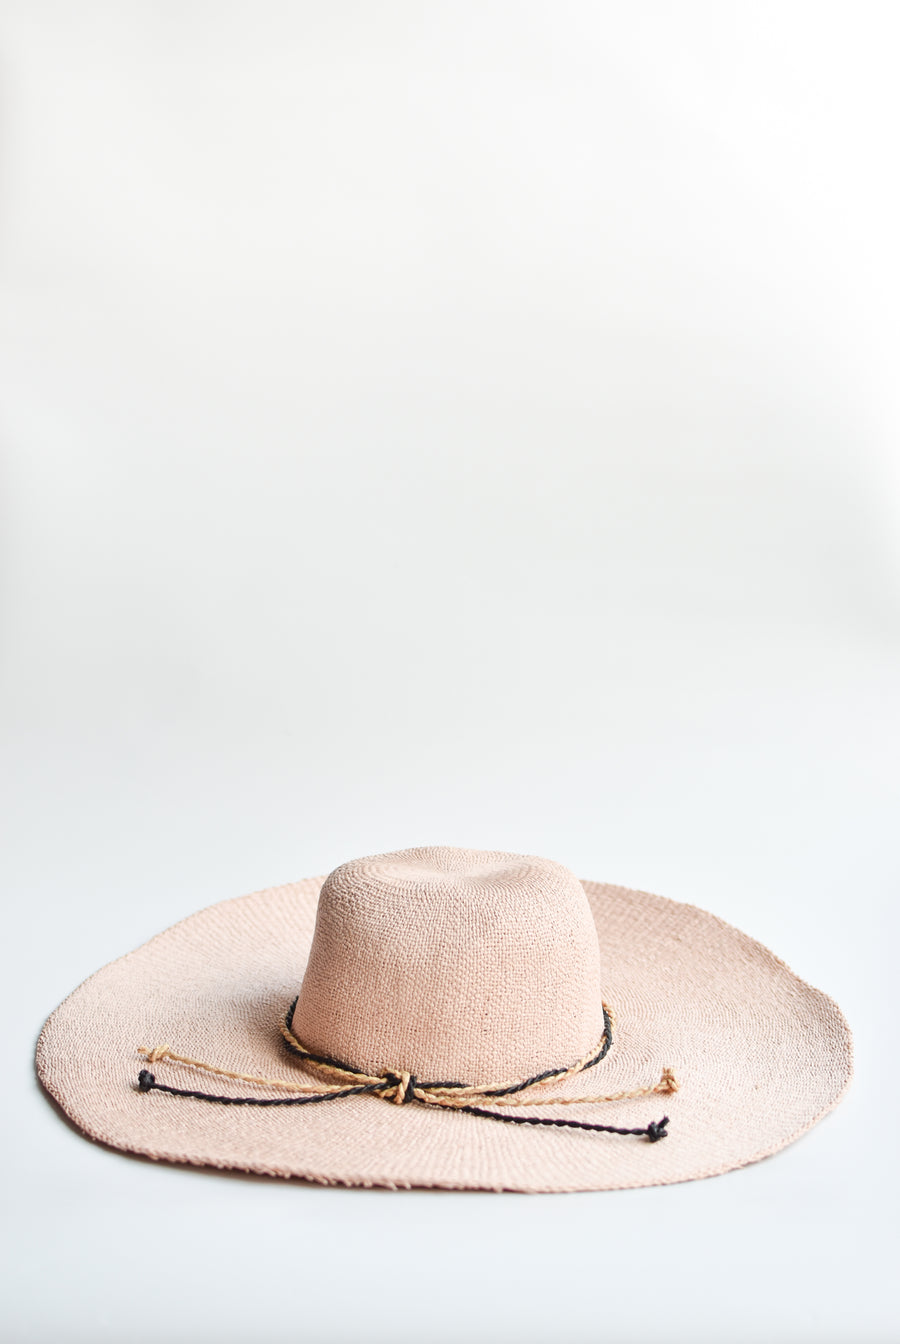 Blush pink floppy straw hat with natural and black braided straw band.